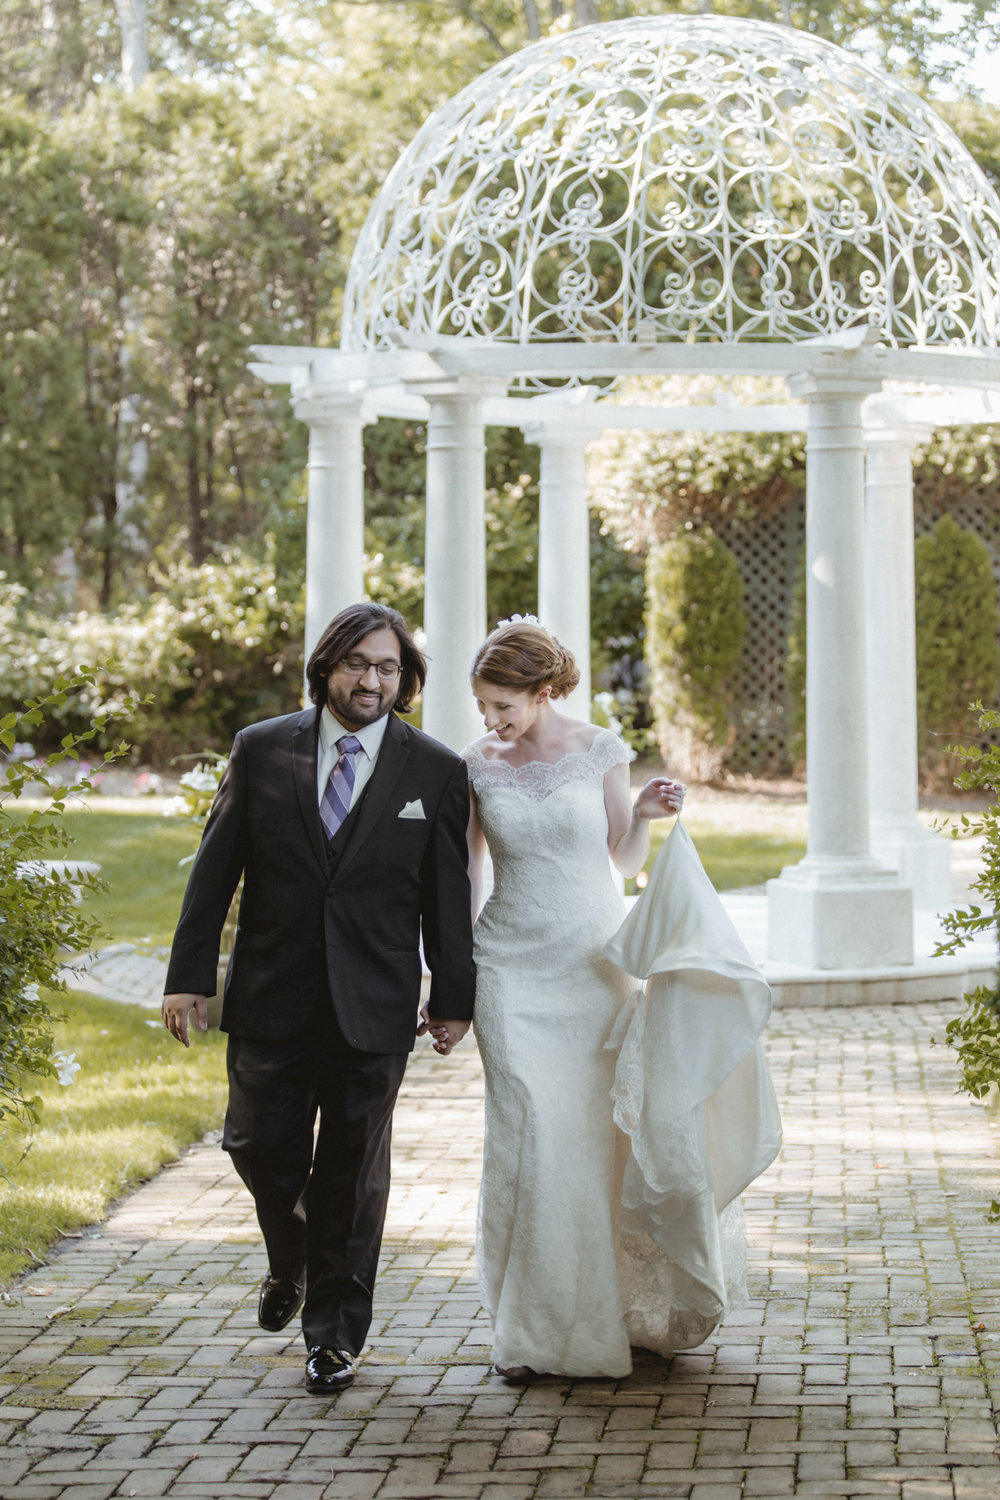 Bride and groom walk through garden - Estate at Florentine Gardens wedding - Hudson Valley Wedding - Kelsey & Anish's wedding - Amy Sims Photography